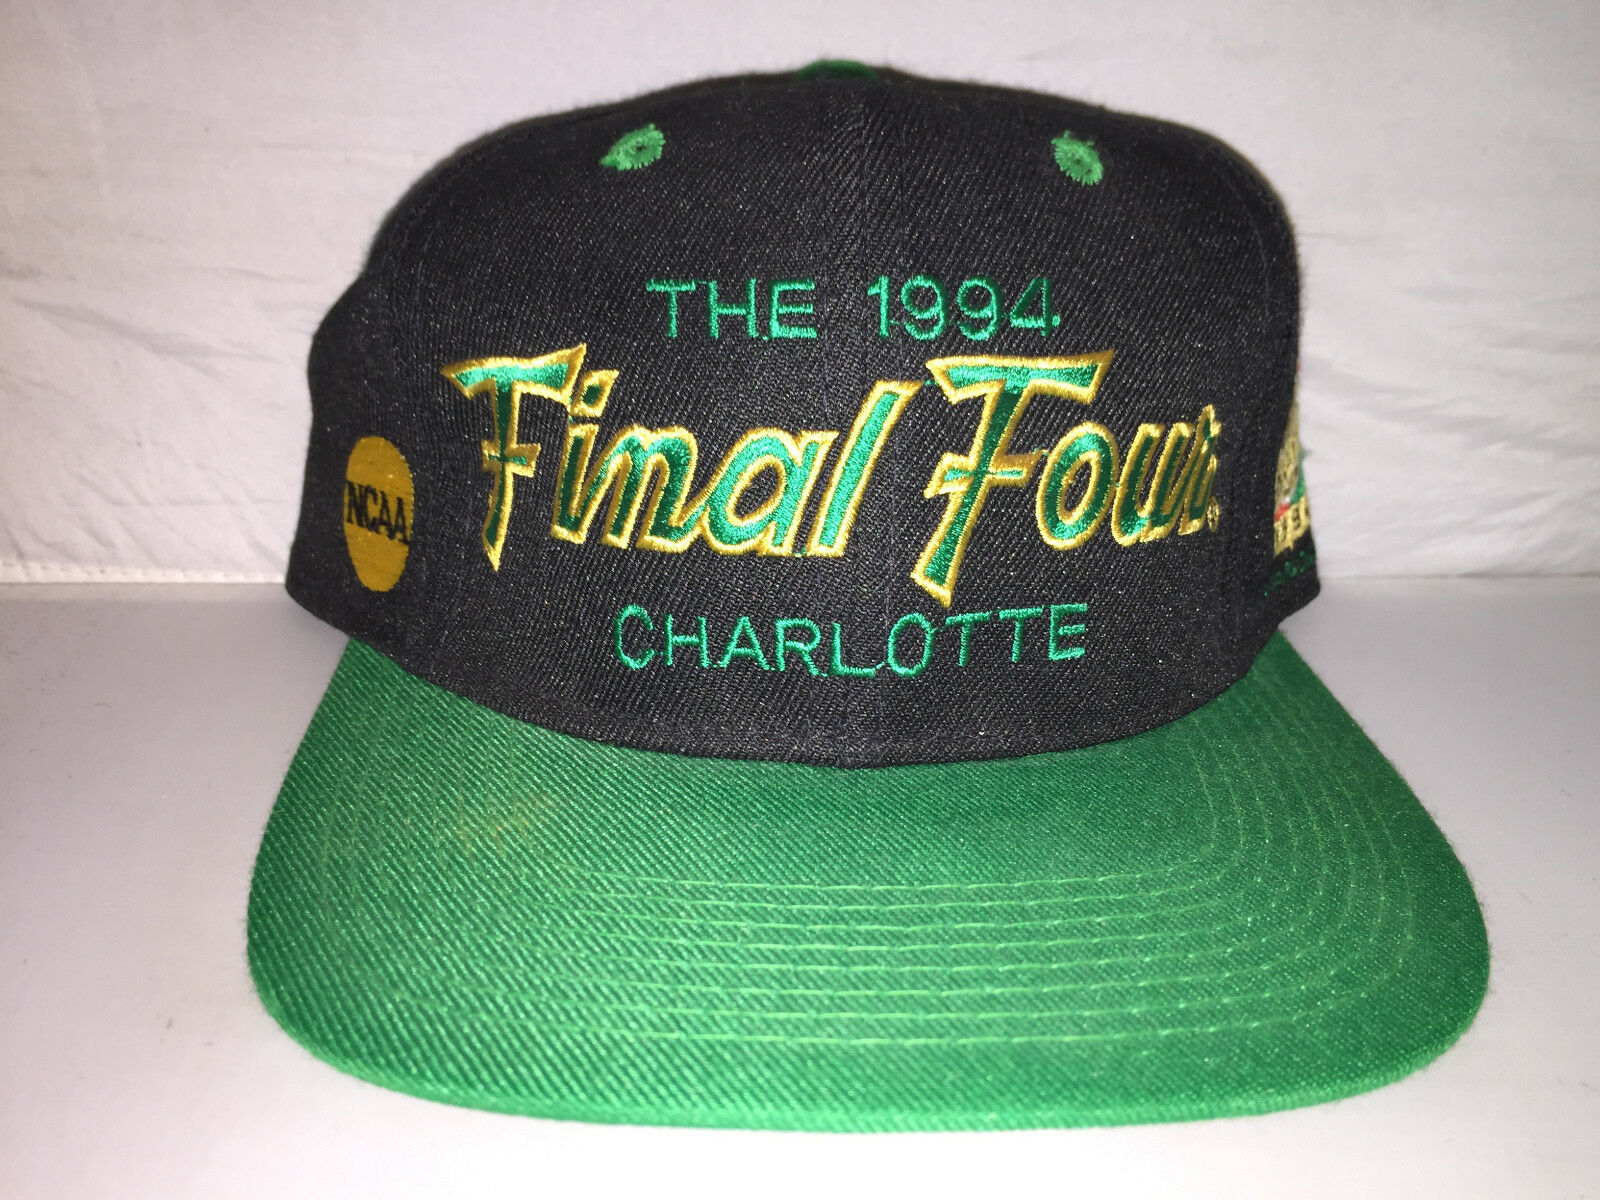 Vtg 1994 Final Four Script Script Script Sports Specialties College Basketball Fitted hat cap b14474